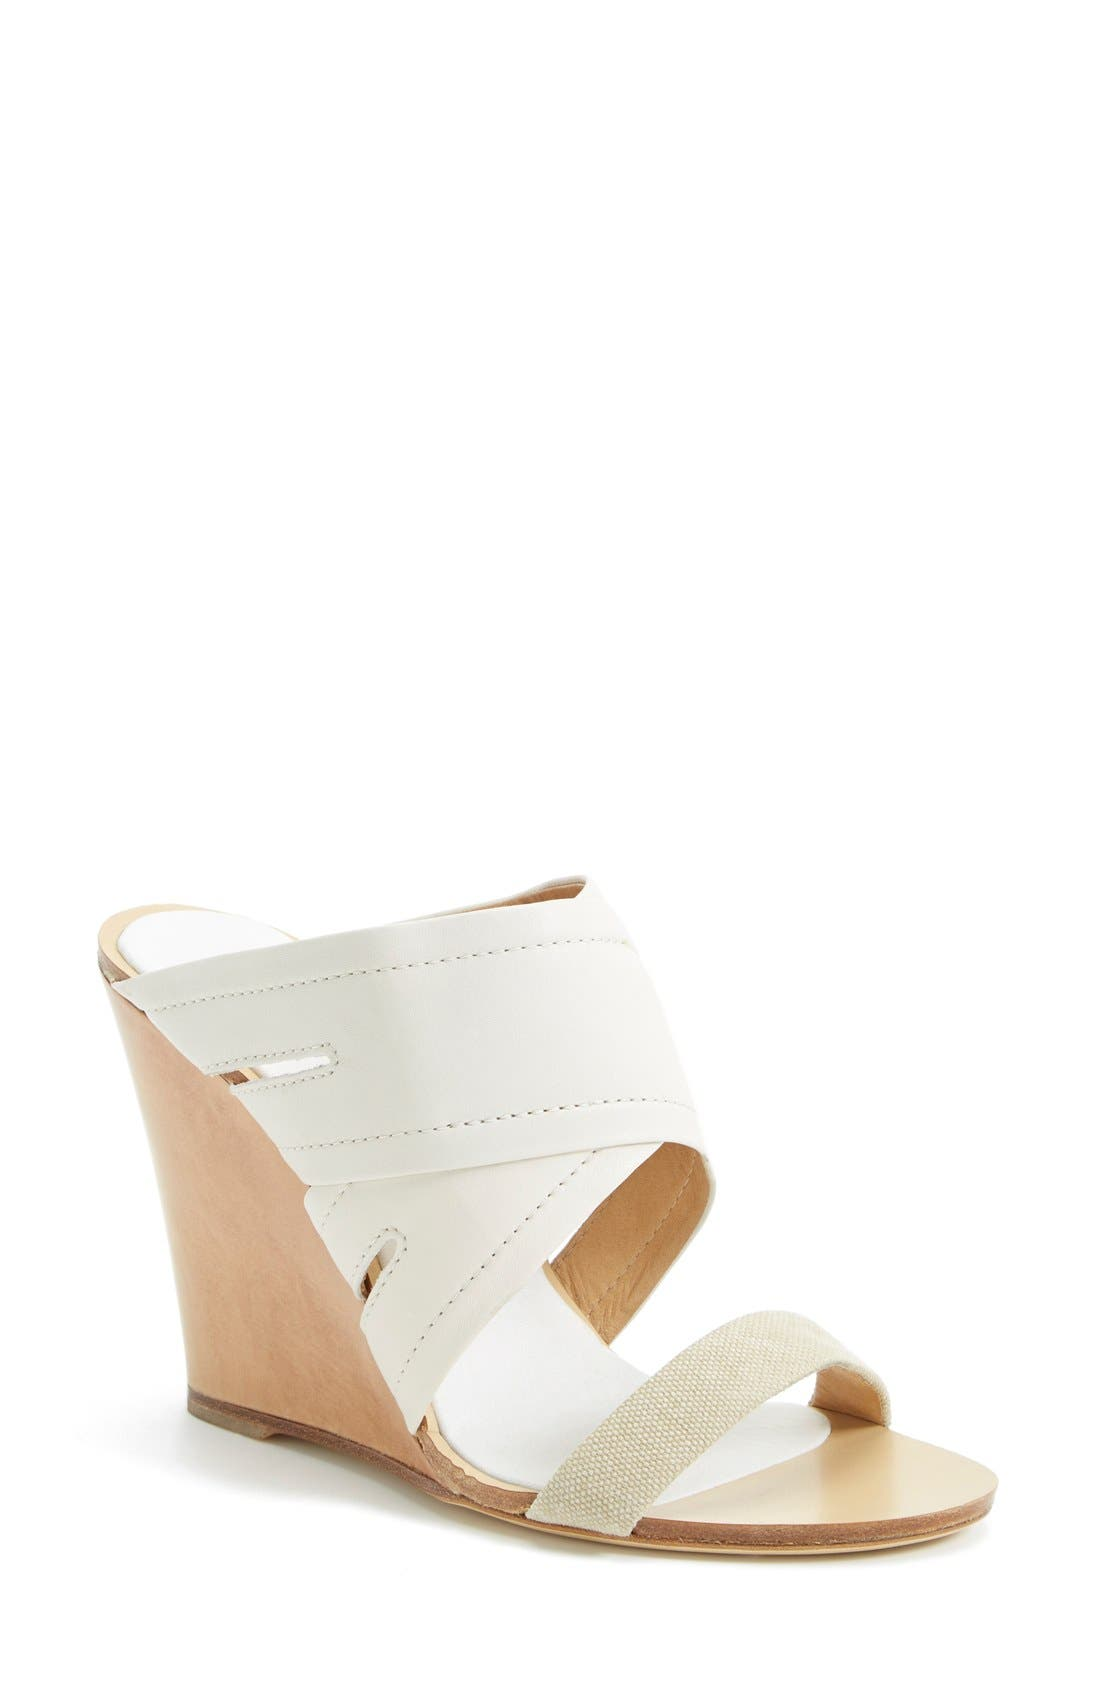 Alternate Image 1 Selected - rag & bone 'Shaw' Mule (Women)